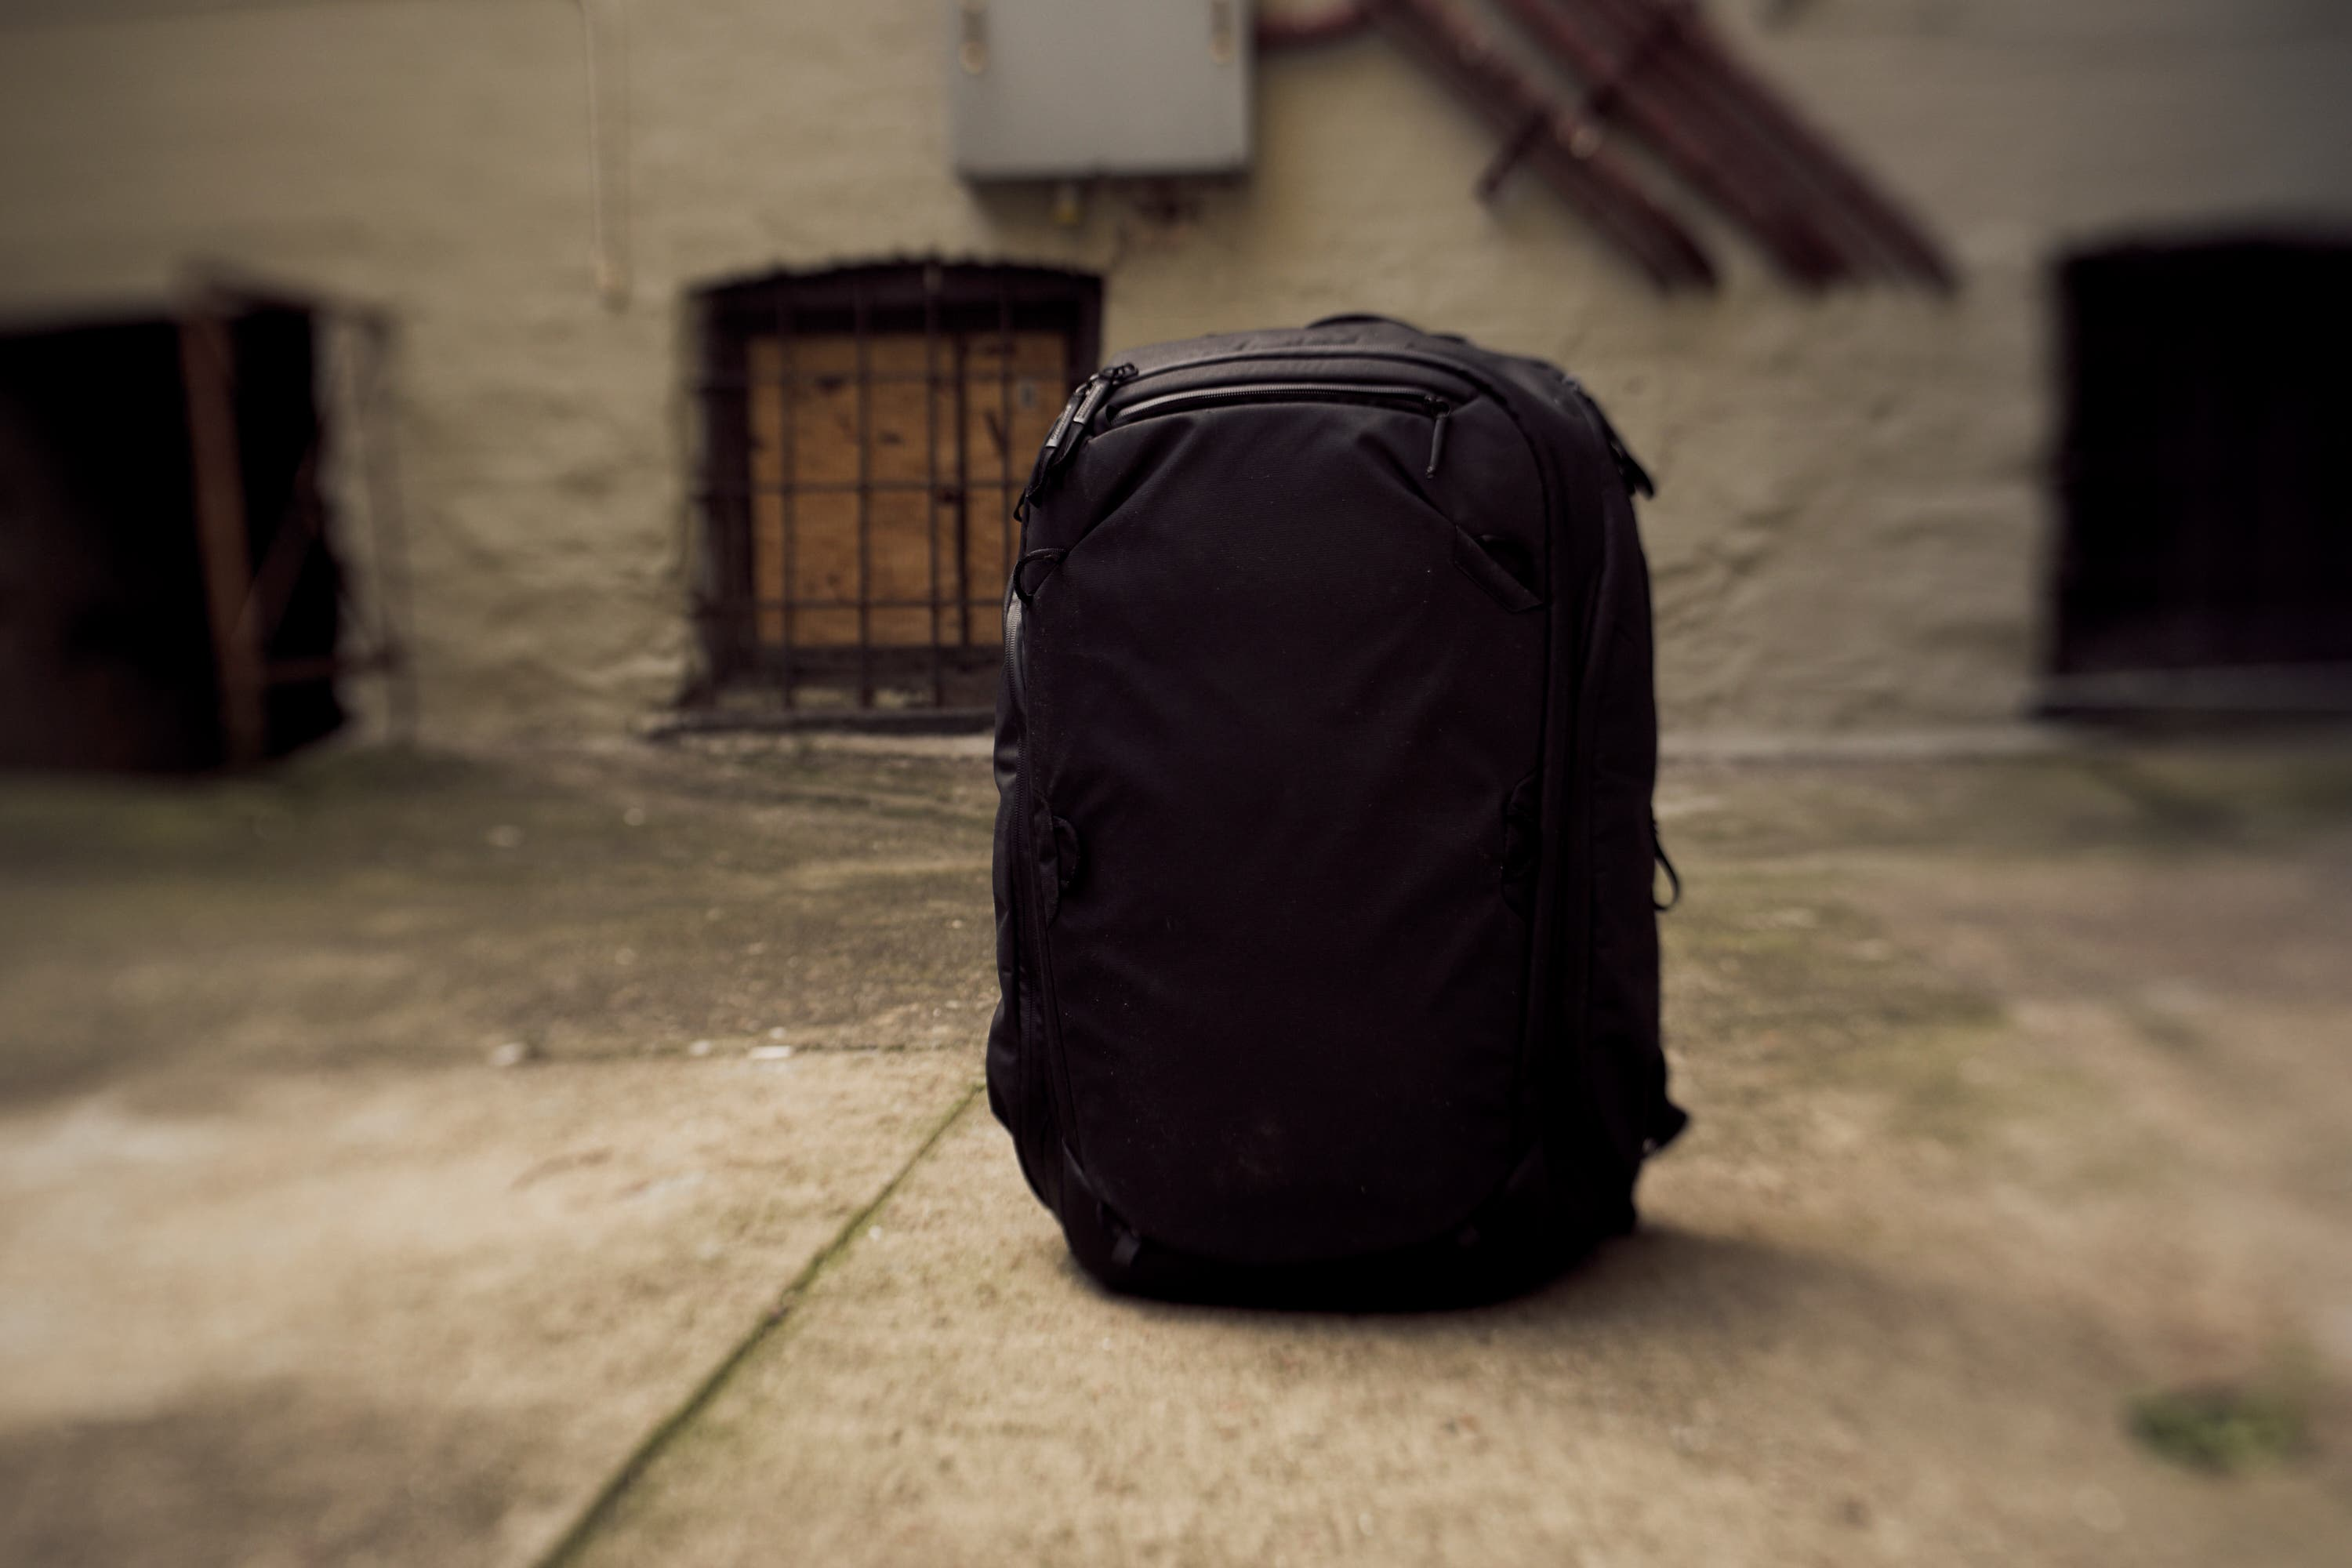 Review: Peak Design Travel Backpack 45L (A Most Frustrating Camera Bag)